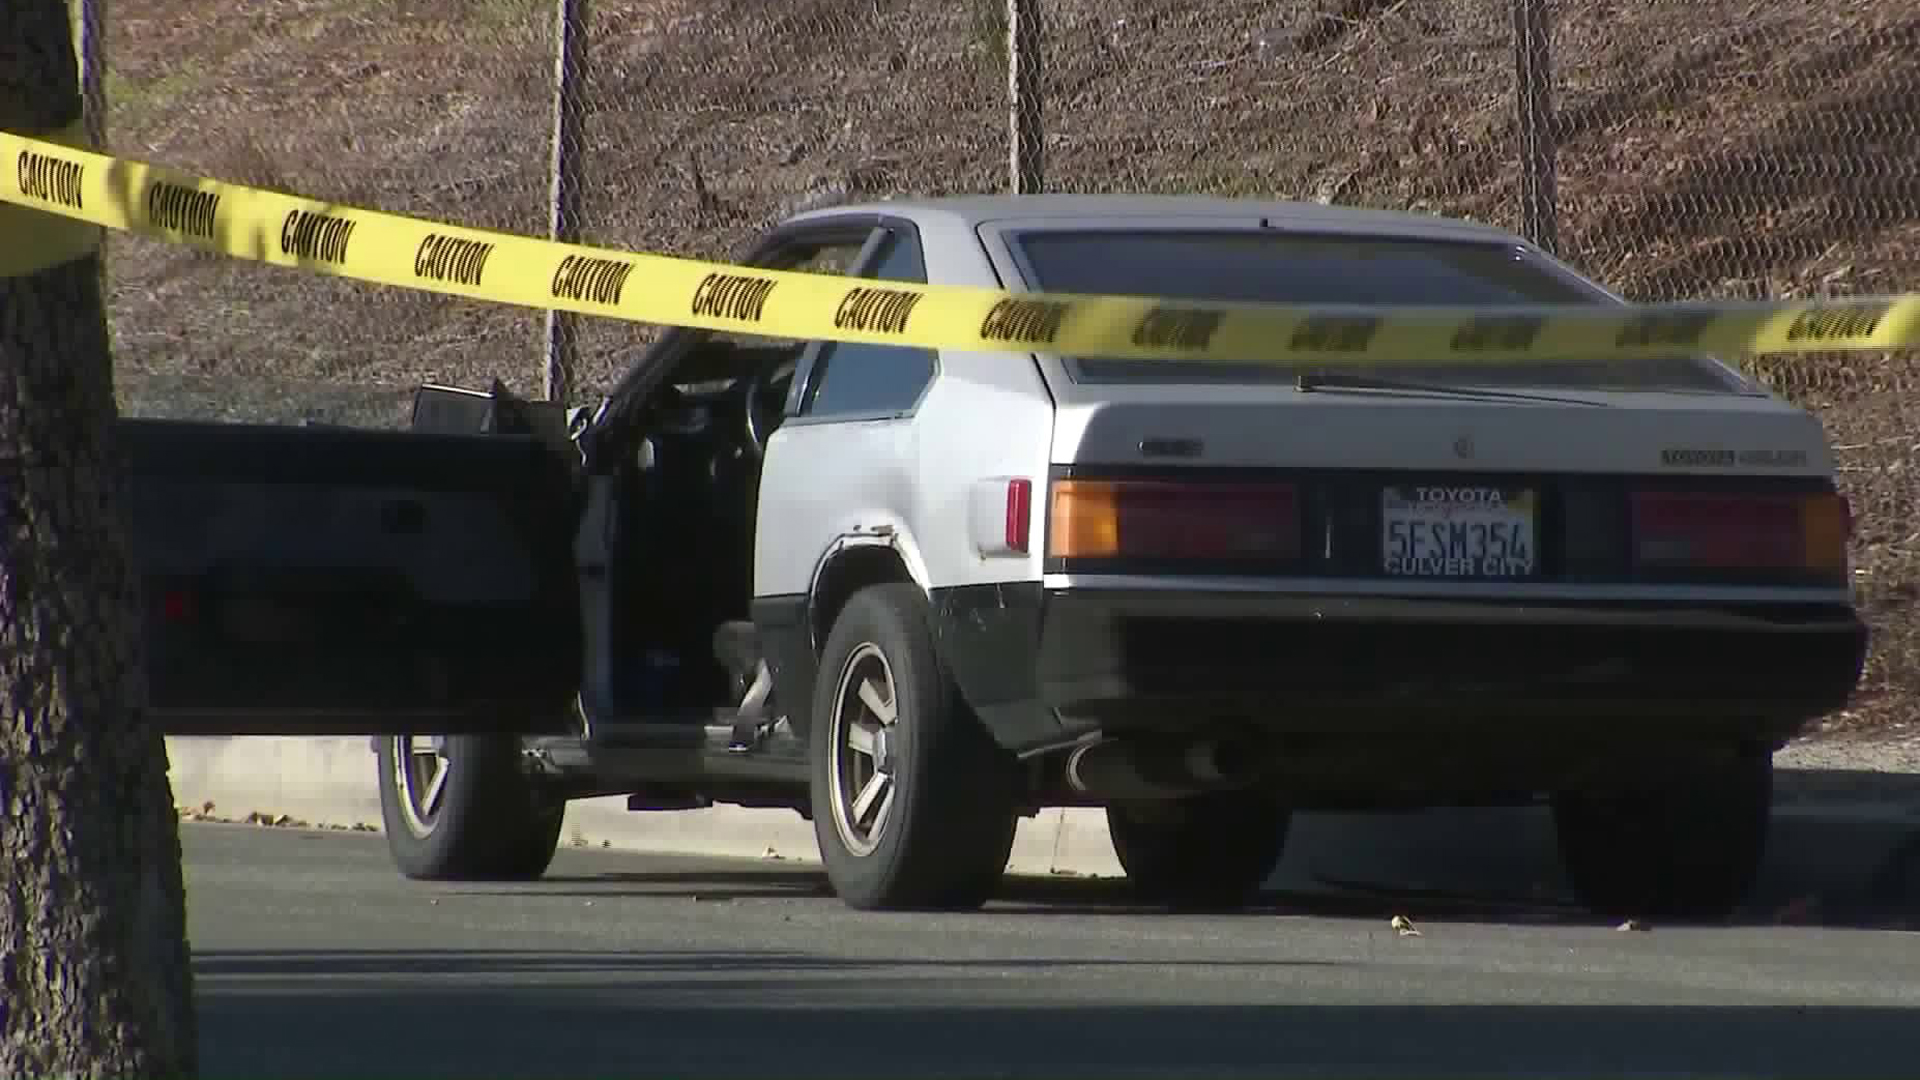 An investigation was underway on Dec. 31, 2019, after a man was shot by an off-duty sheriff's deputy in the Mid-City area. (Credit: KTLA)